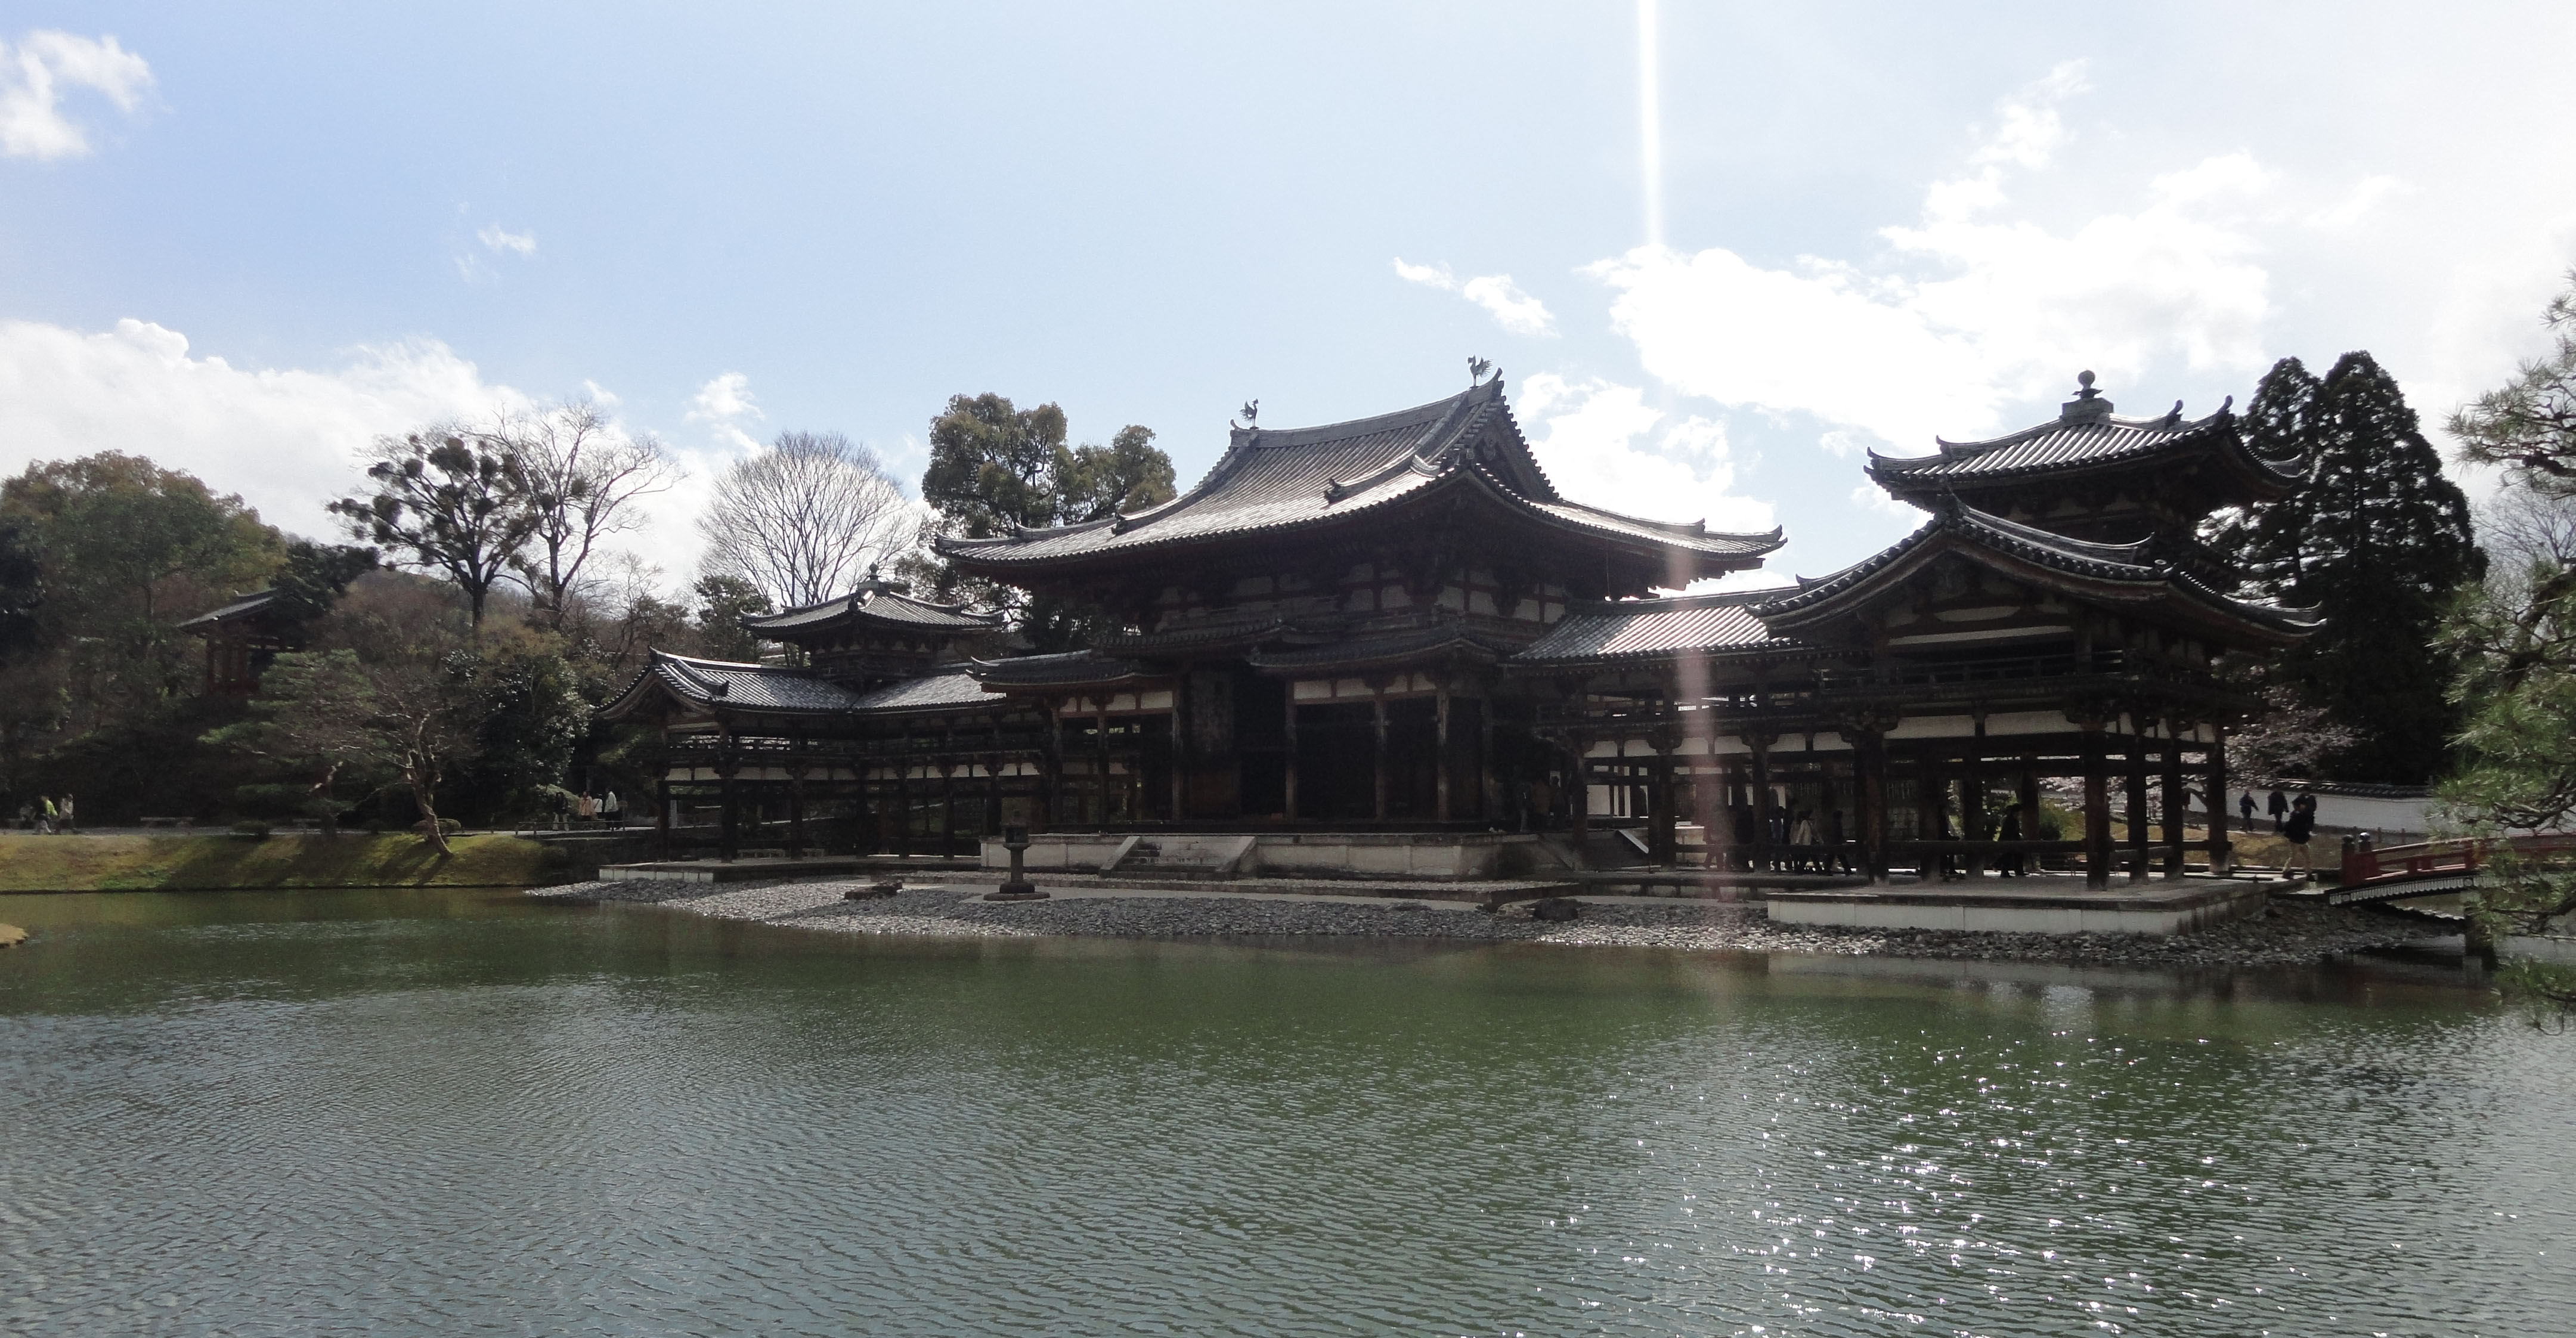 Byodo in temple Phoenix Hall Jodo shiki garden pond Kyoto Japan 03